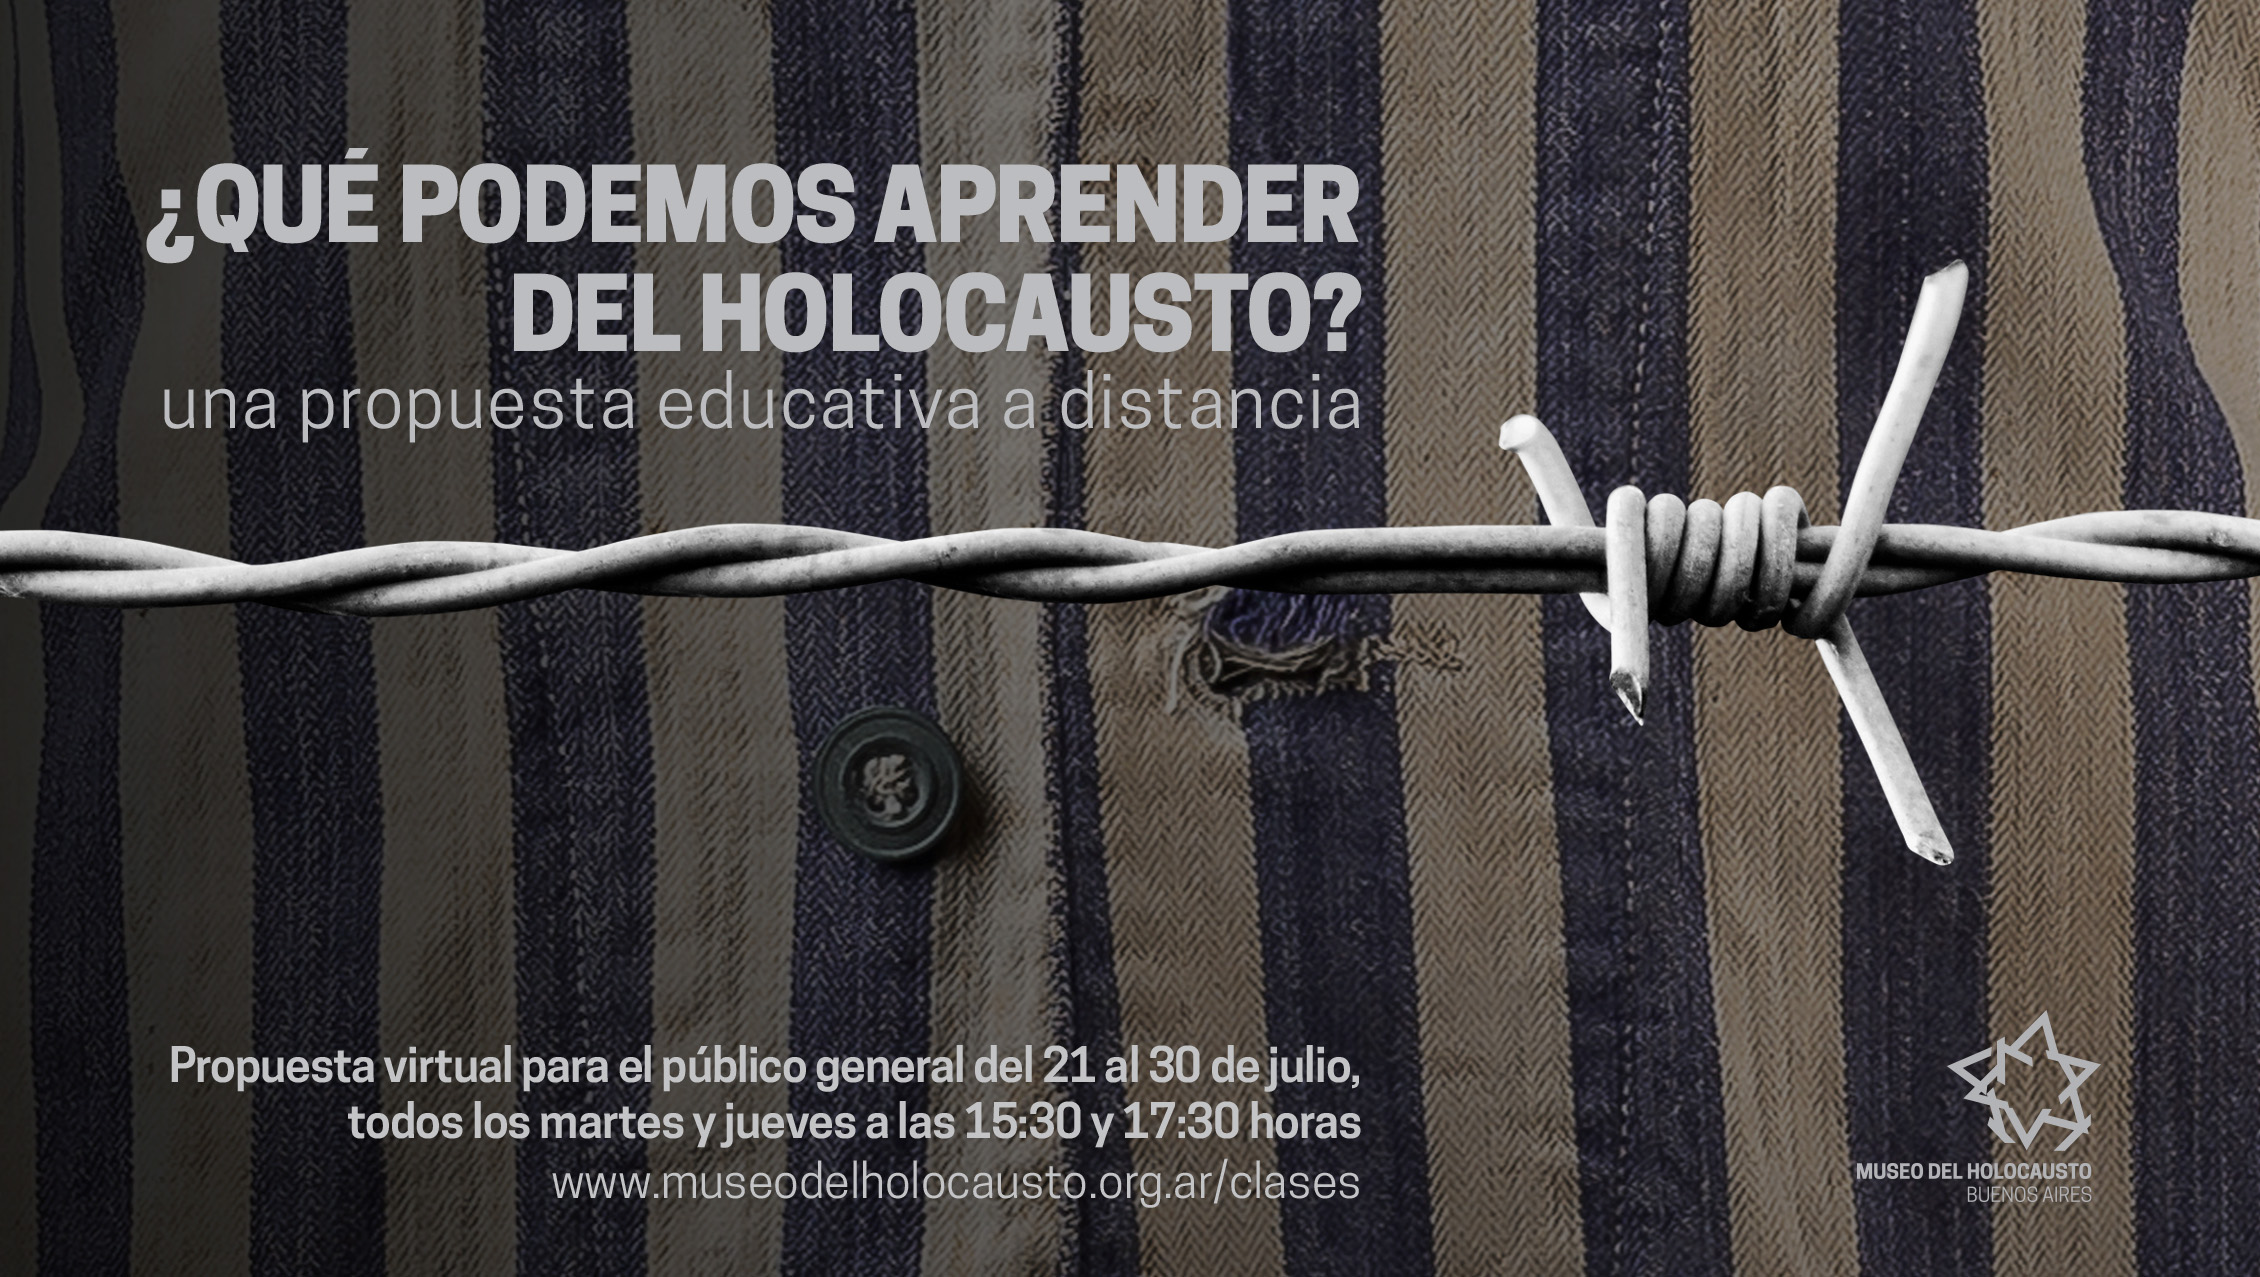 APRENDER HOLOCAUSTO_Publico general_uniforme